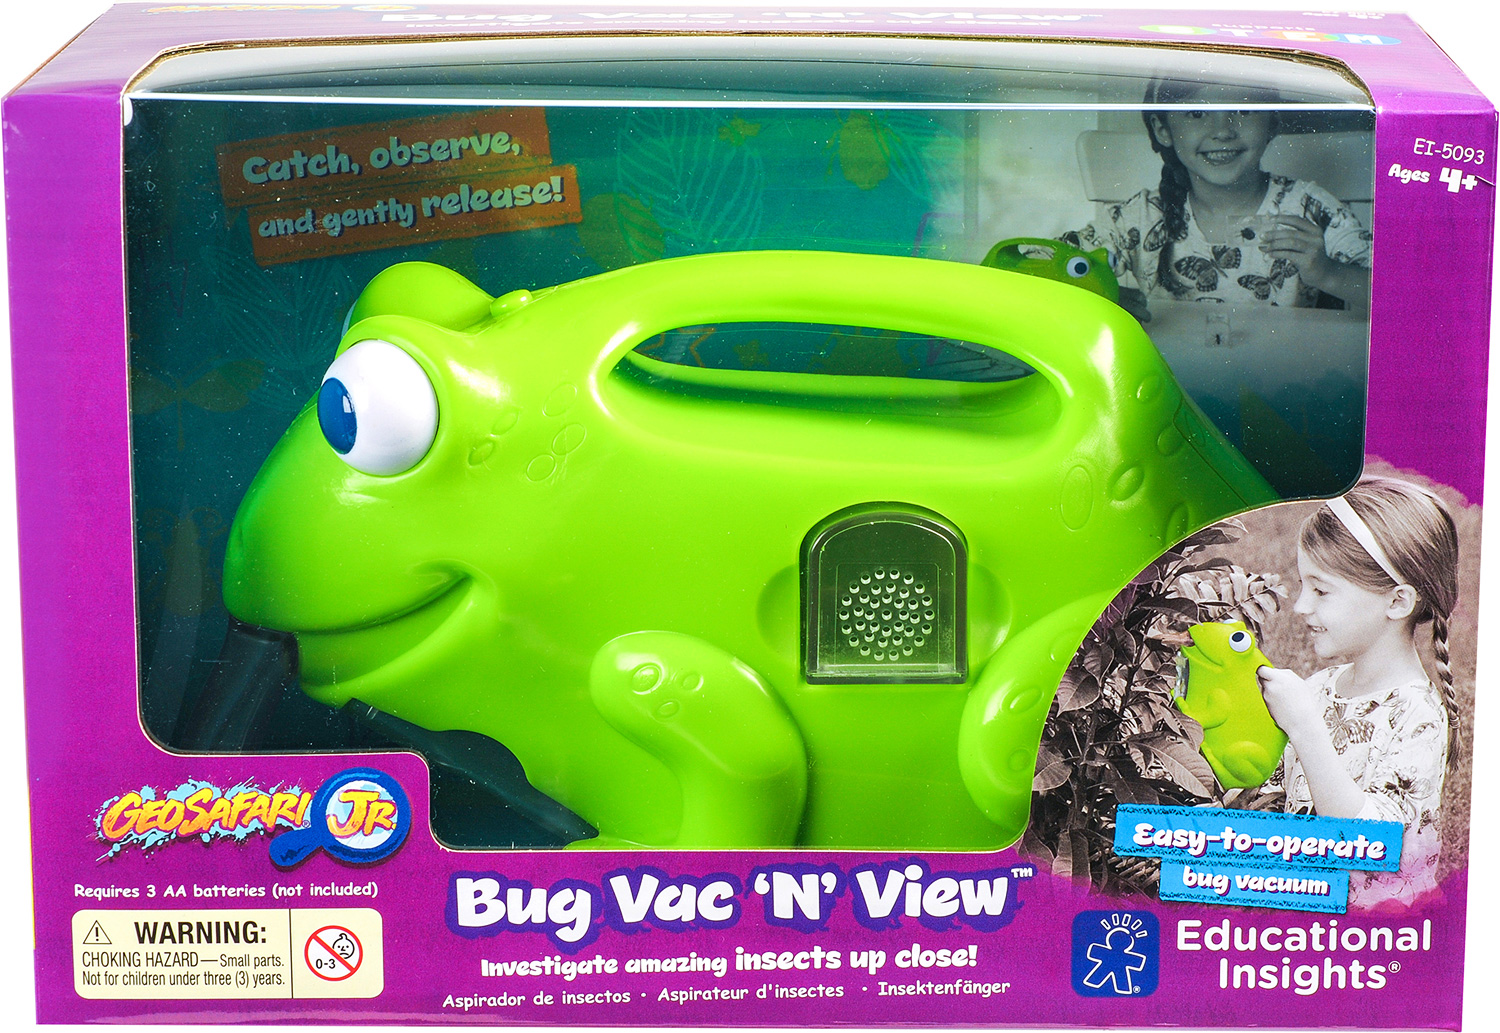 GeoSafari® Jr. Bug Vac 'N' ViewTM